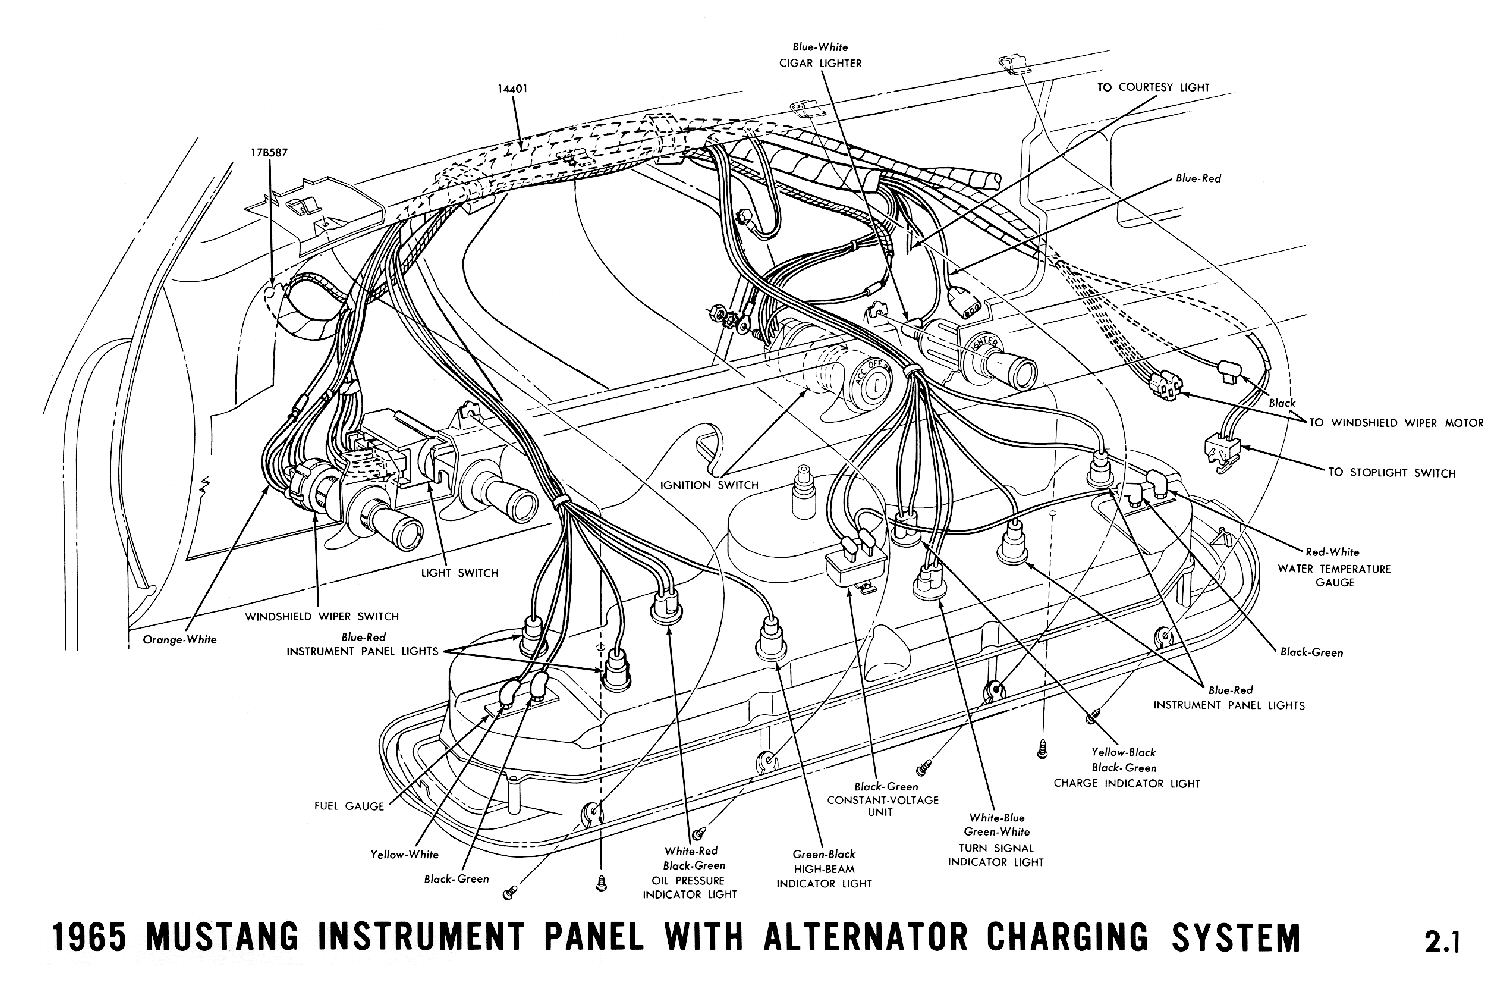 1965 mustang wiring diagram for lighting trusted schematics diagram 68 chevelle wiring diagram 1965 mustang wiring diagrams average joe restoration 1965 ford alternator wiring diagram 1965 mustang wiring diagram for lighting